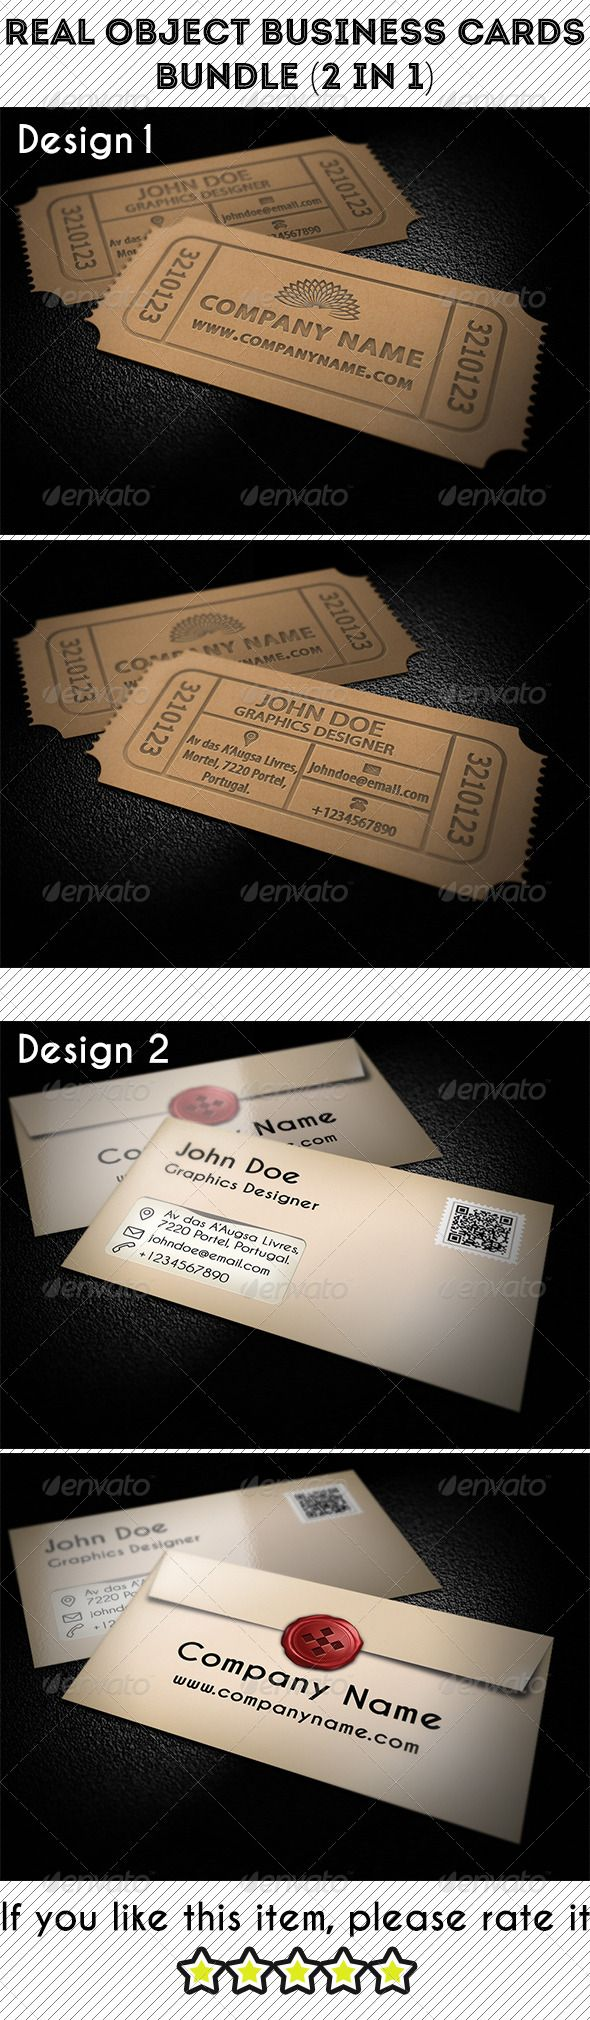 98 best business card s e l e c t i o n images on pinterest real object business cards bundle reheart Choice Image